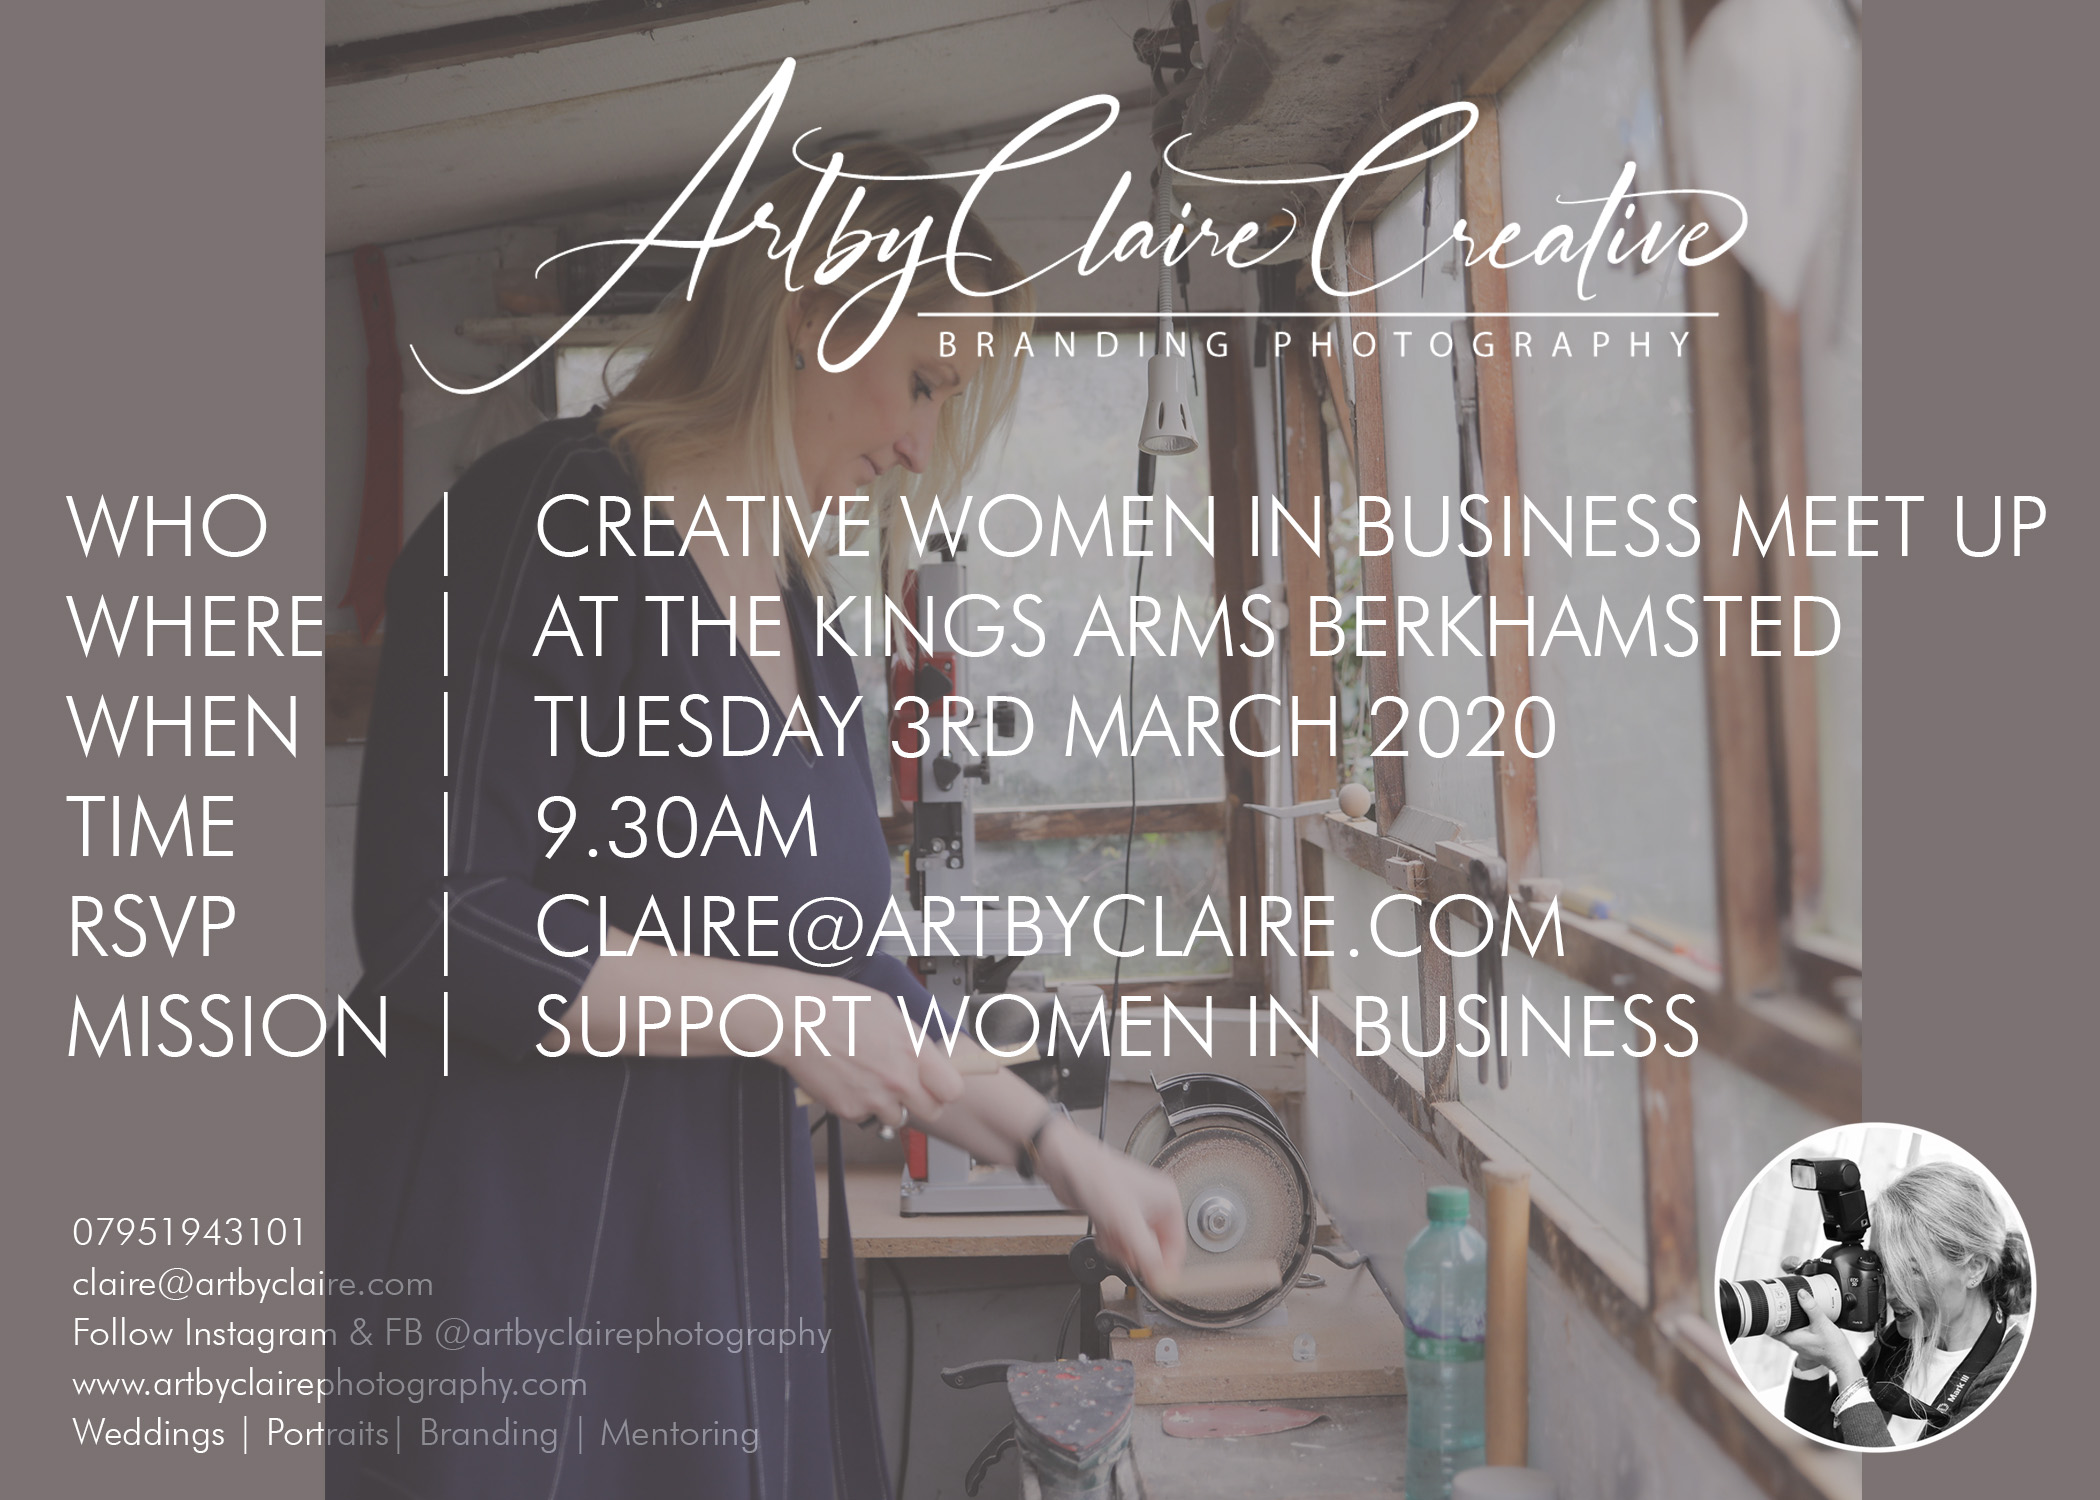 ArtbyClaire Creative Women in business meet up, The Kings Arms Berkhamsted